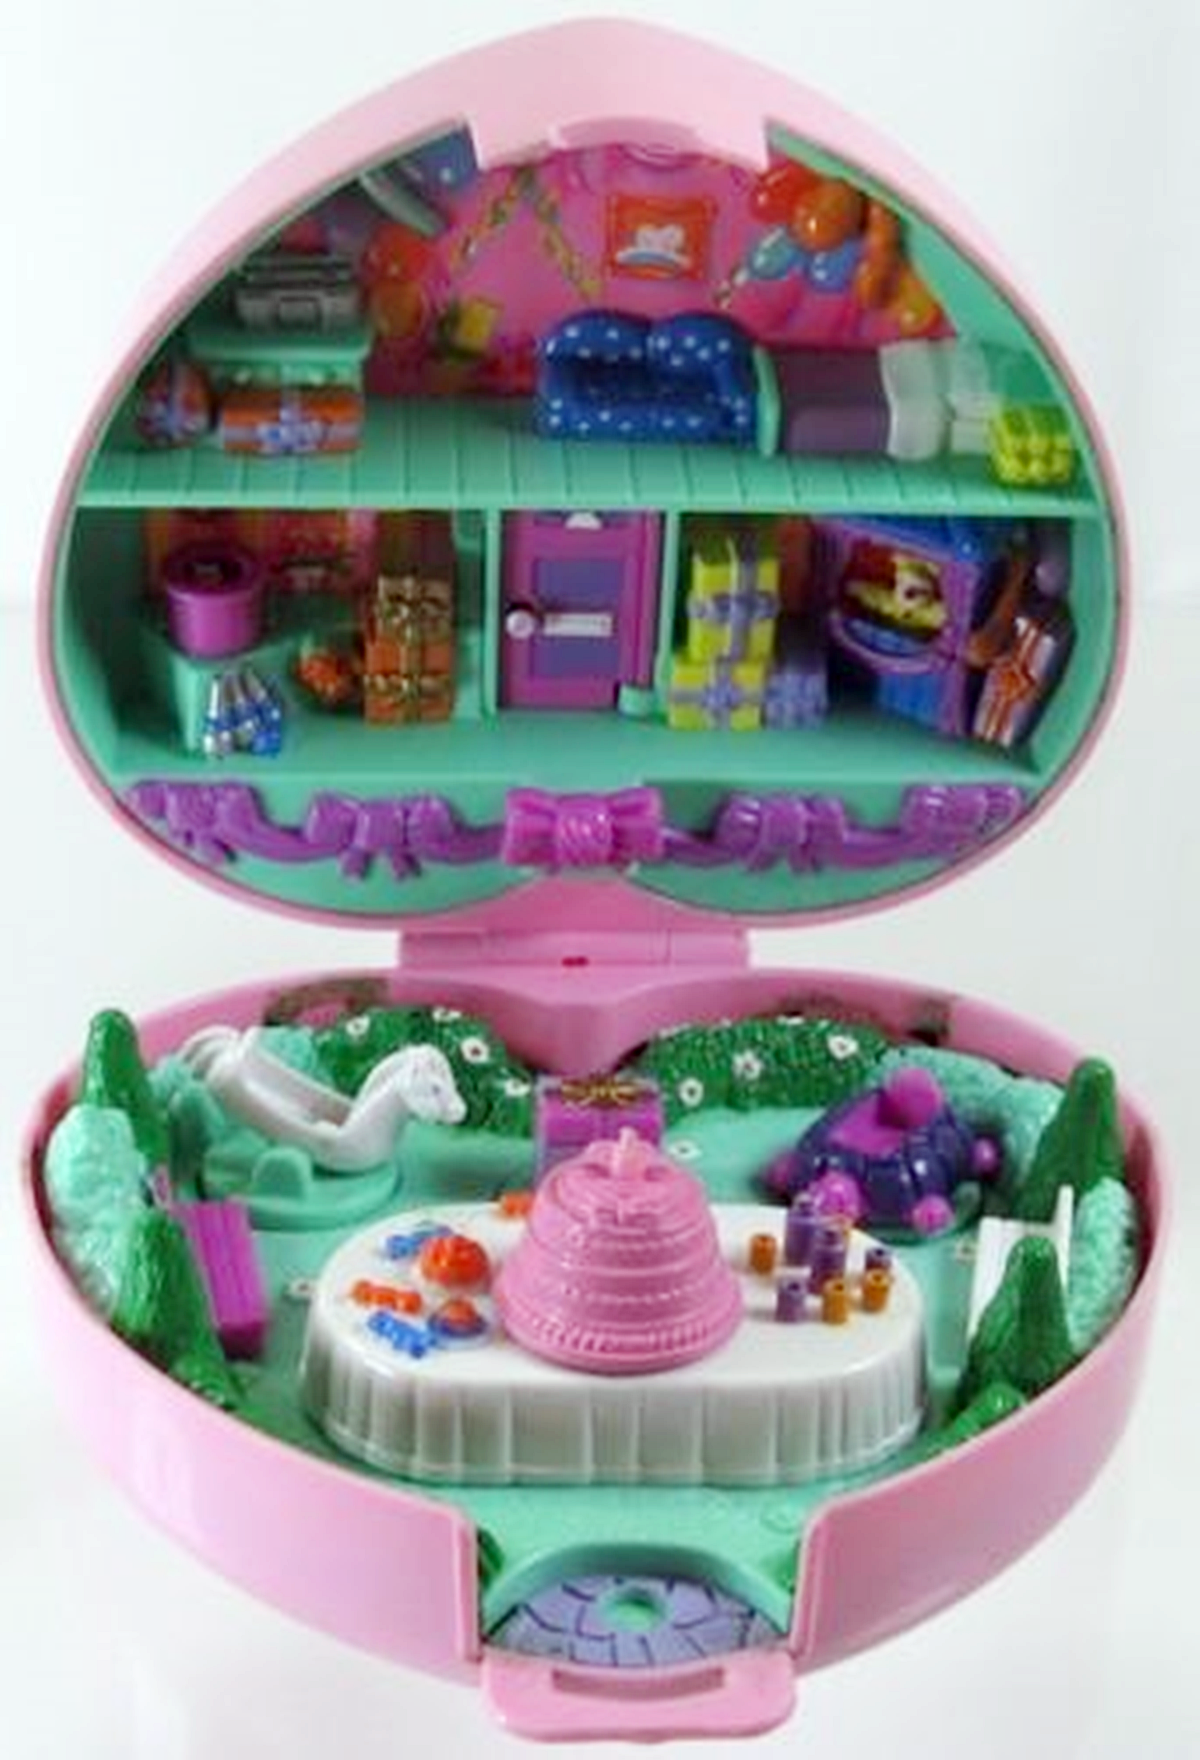 POLLYPOCKET 10 Toys From Our Childhood That Are Now Worth A Lot Of Money